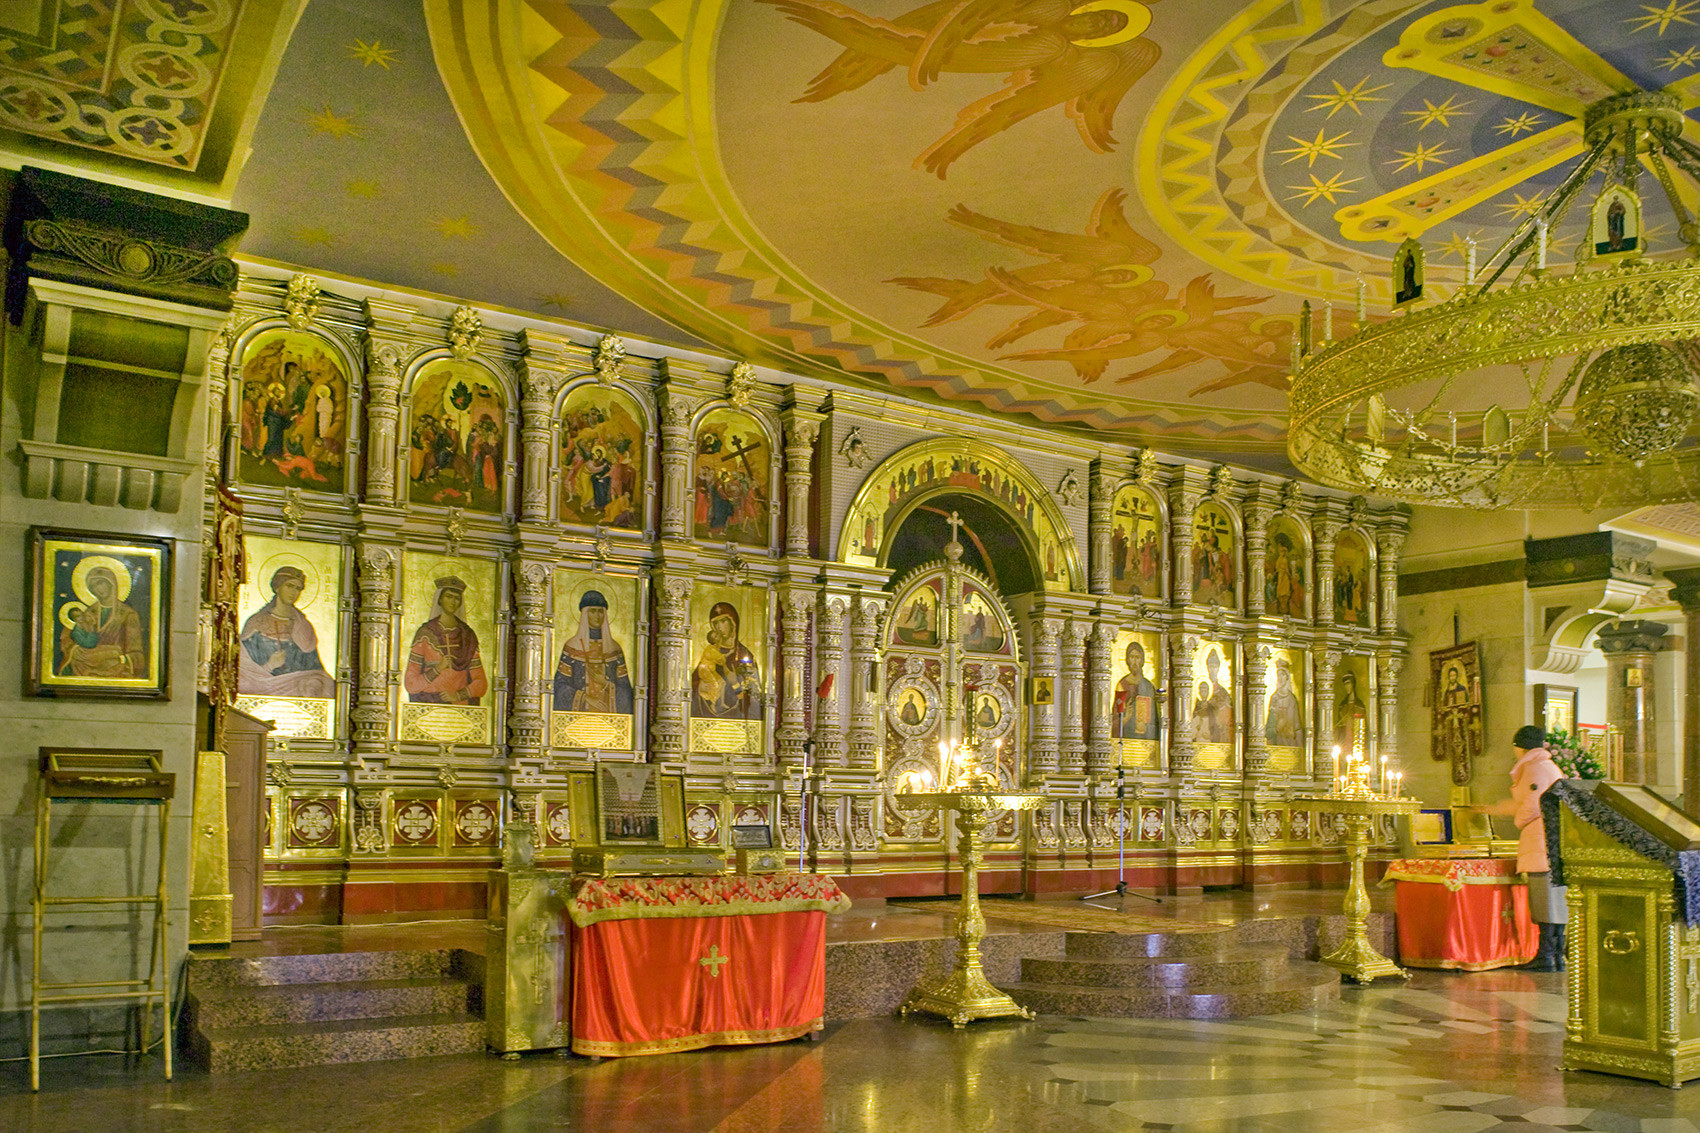 Church of All Saints Resplendent in the Russian Land. Interior view of lower church dedicated to the New Martyrs and Witnesses of the Russian Church. April 3, 2017.